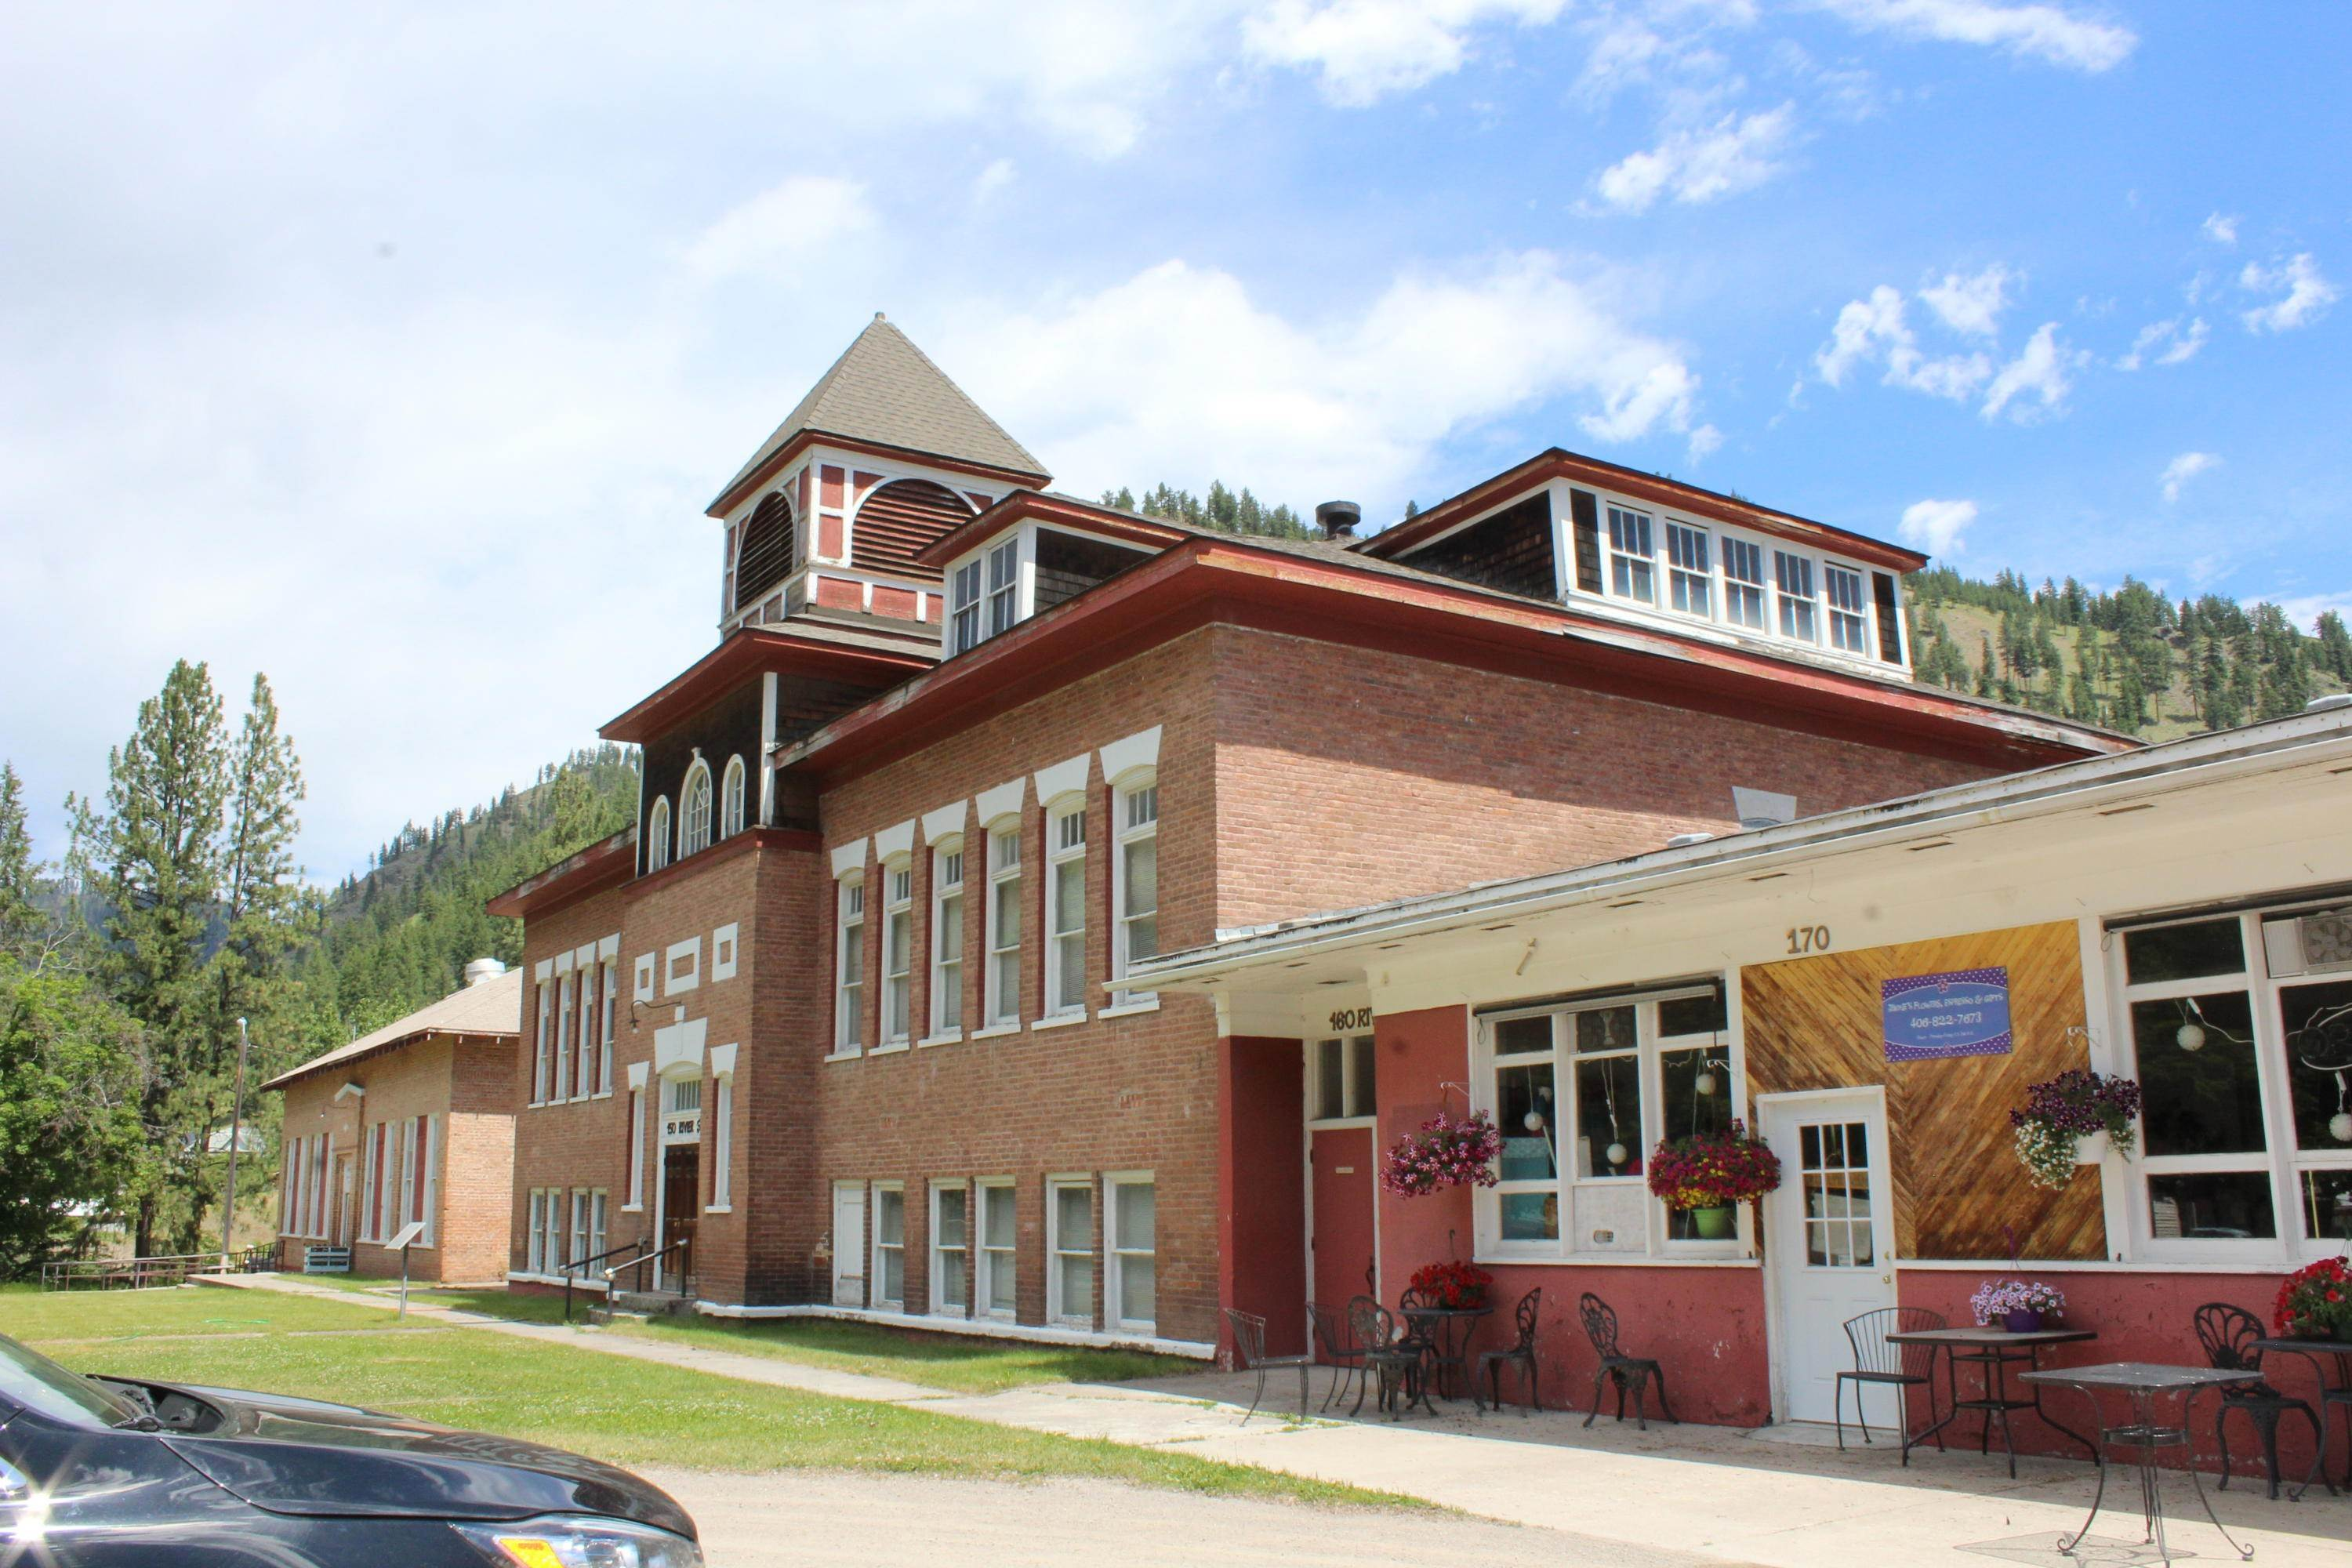 Commercial for Sale at 100 River Street Superior, Montana 59872 United States